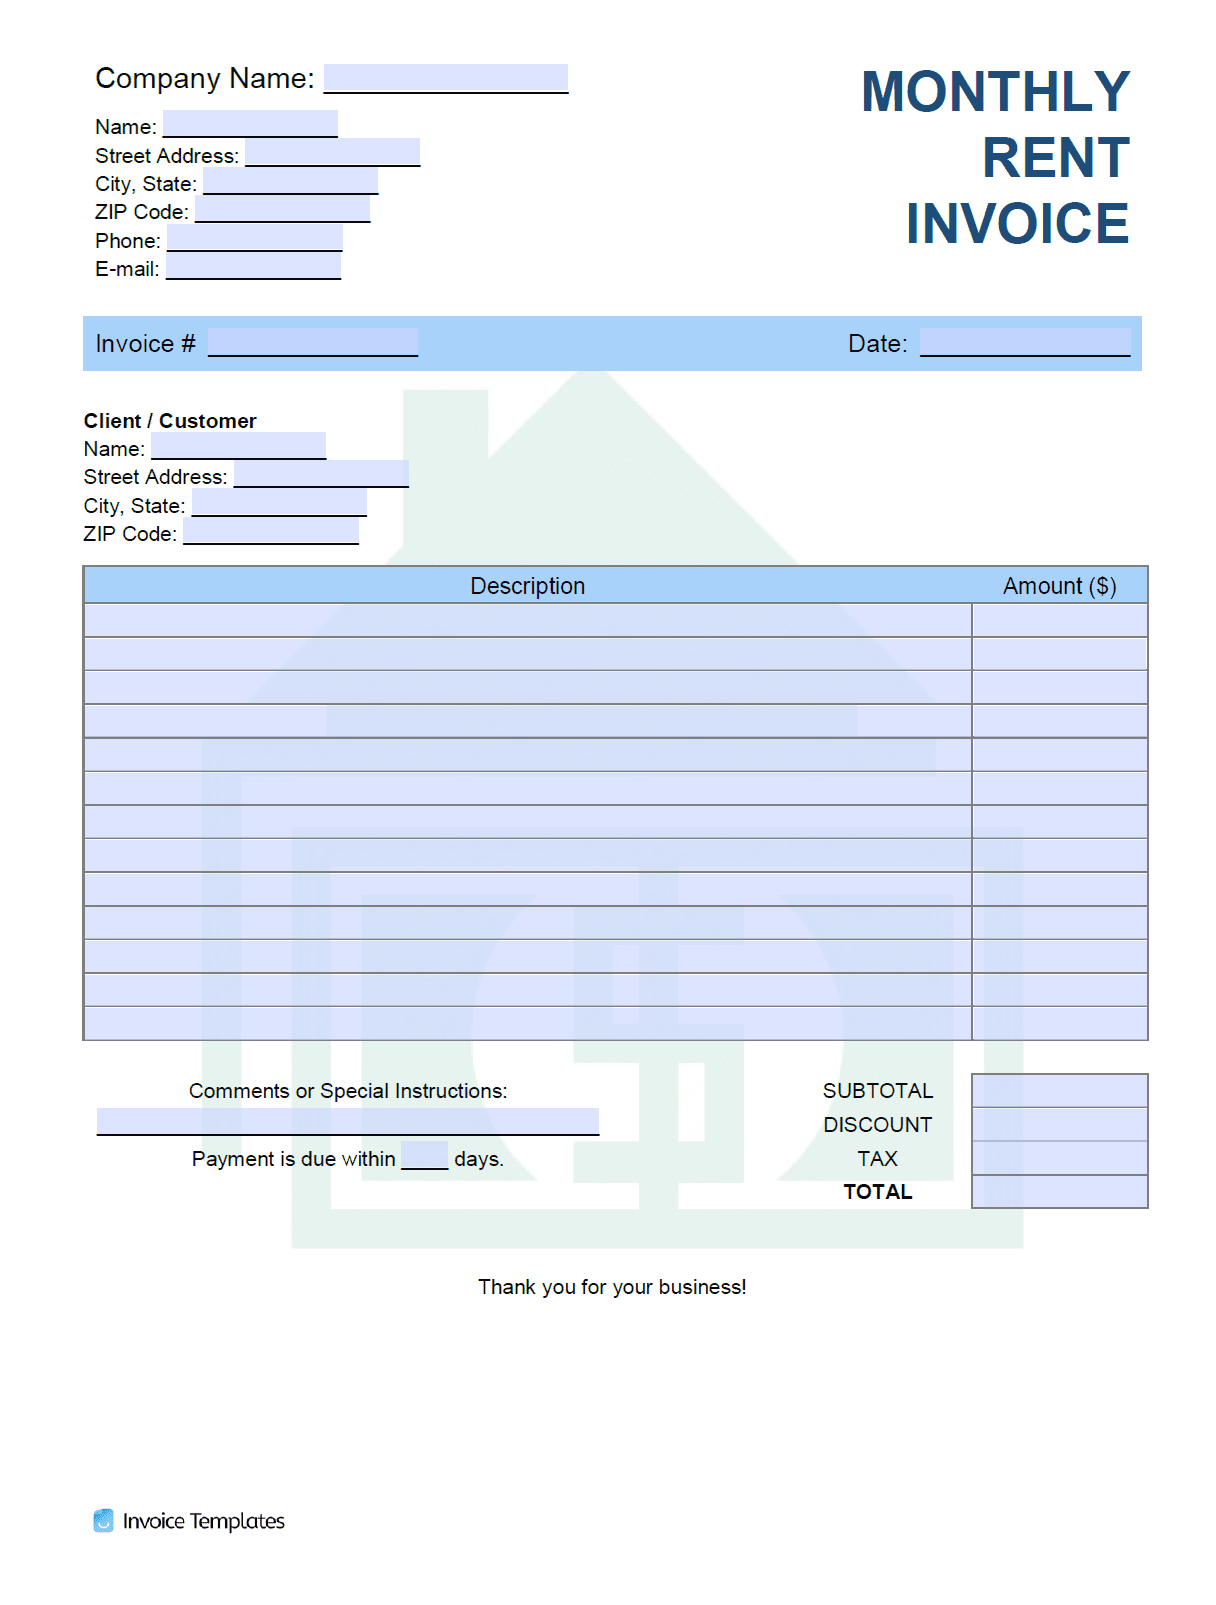 Free Monthly Rent Landlord Invoice Template Pdf Word Excel